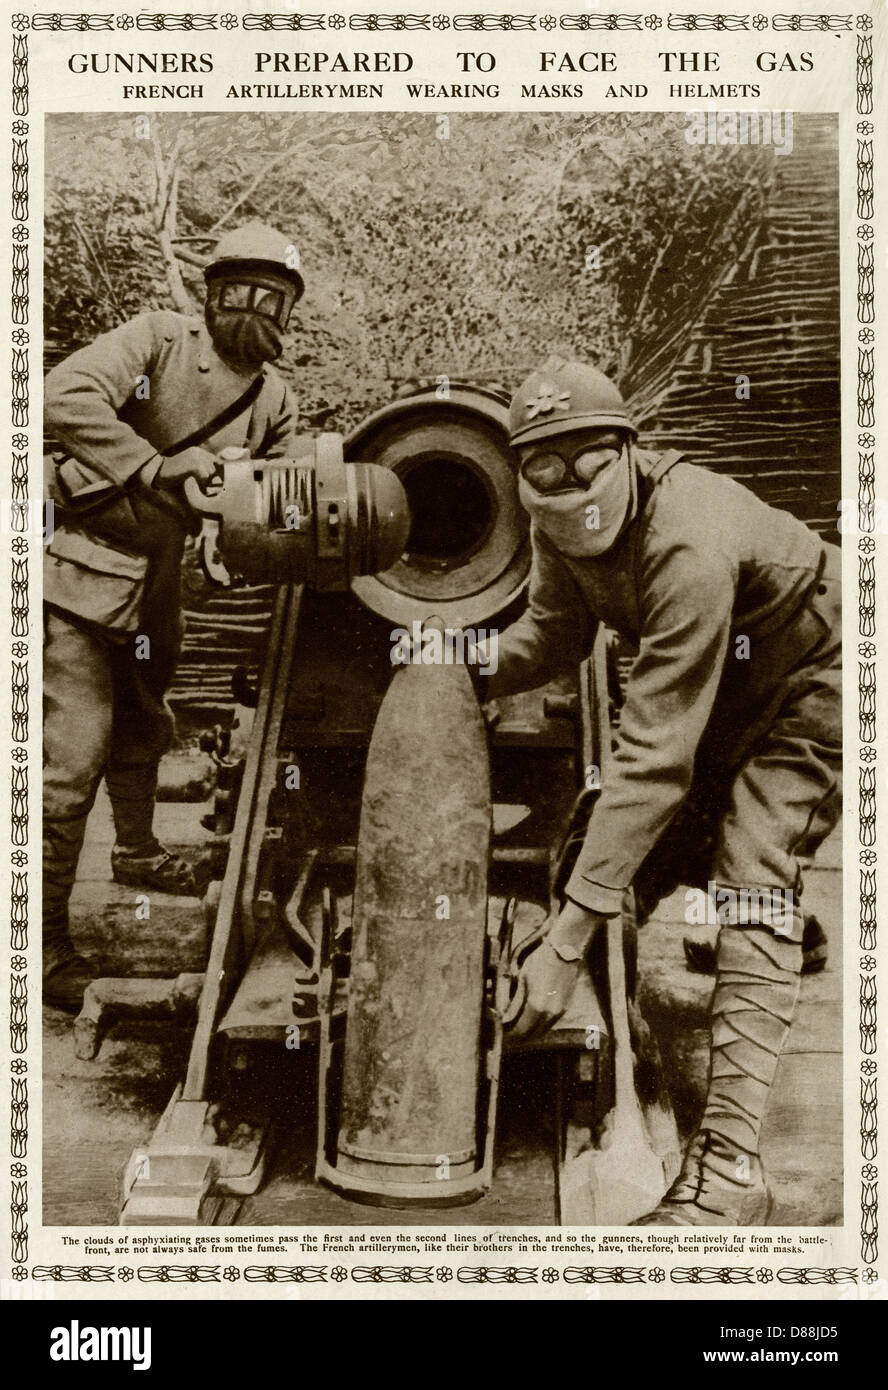 Gunners Prepared To Face The Gas 1916 - Stock Image